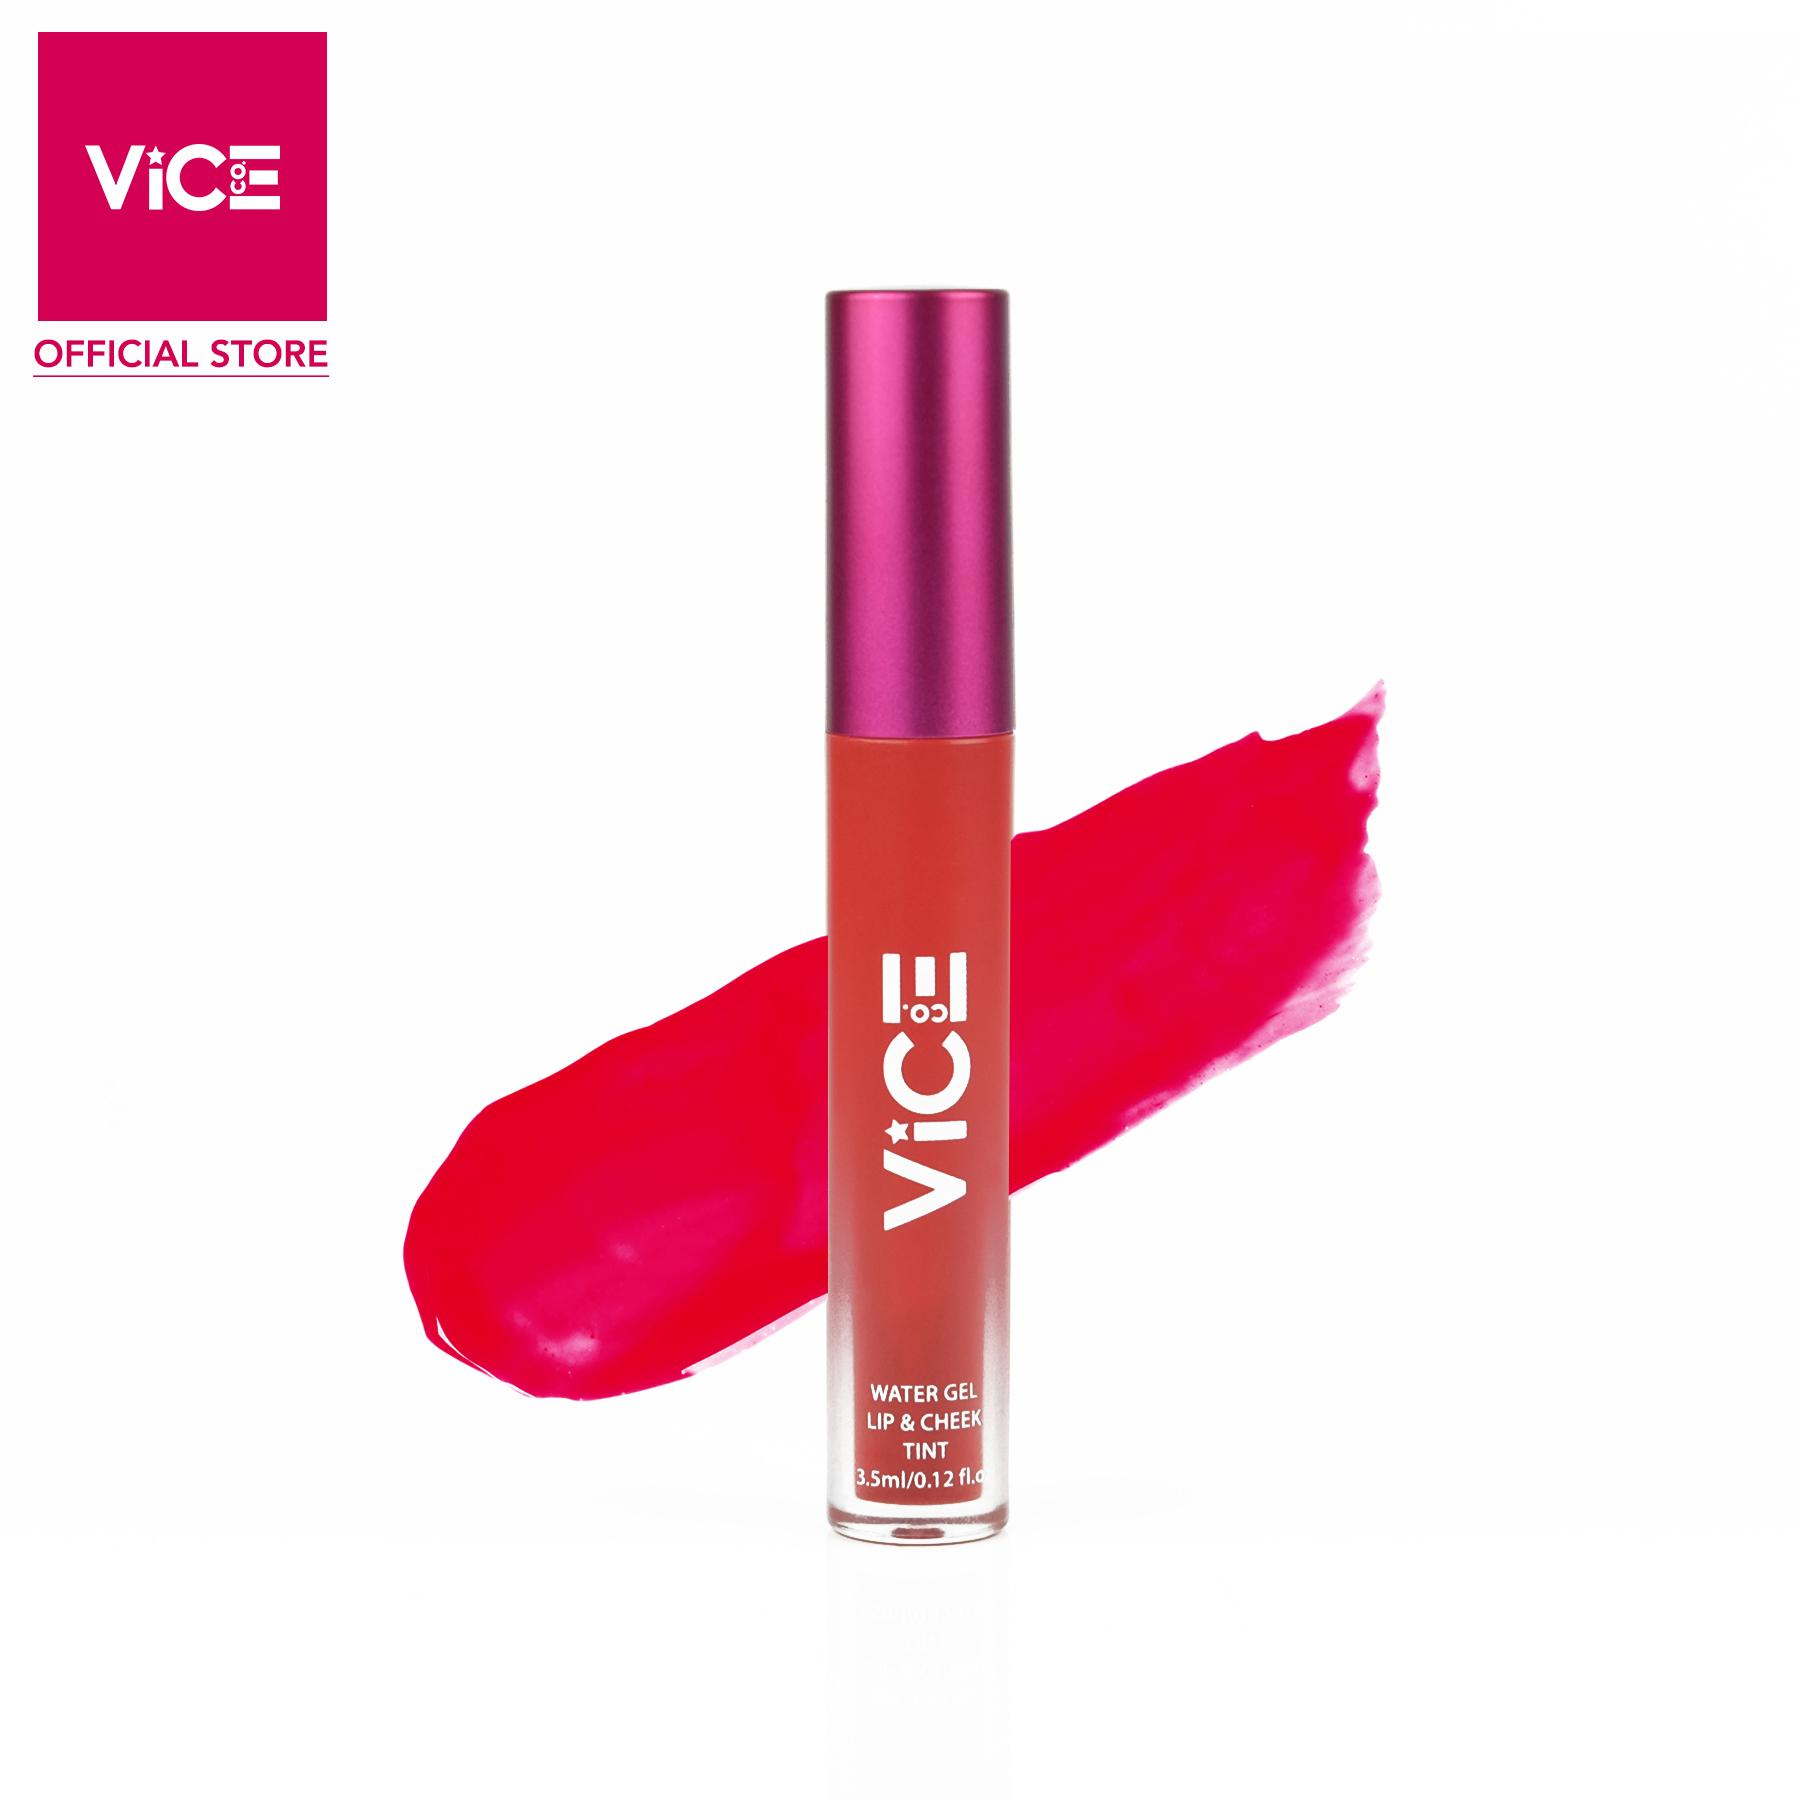 Vice Cosmetics Water Gel Lip & Cheek Tint Kyondi Philippines